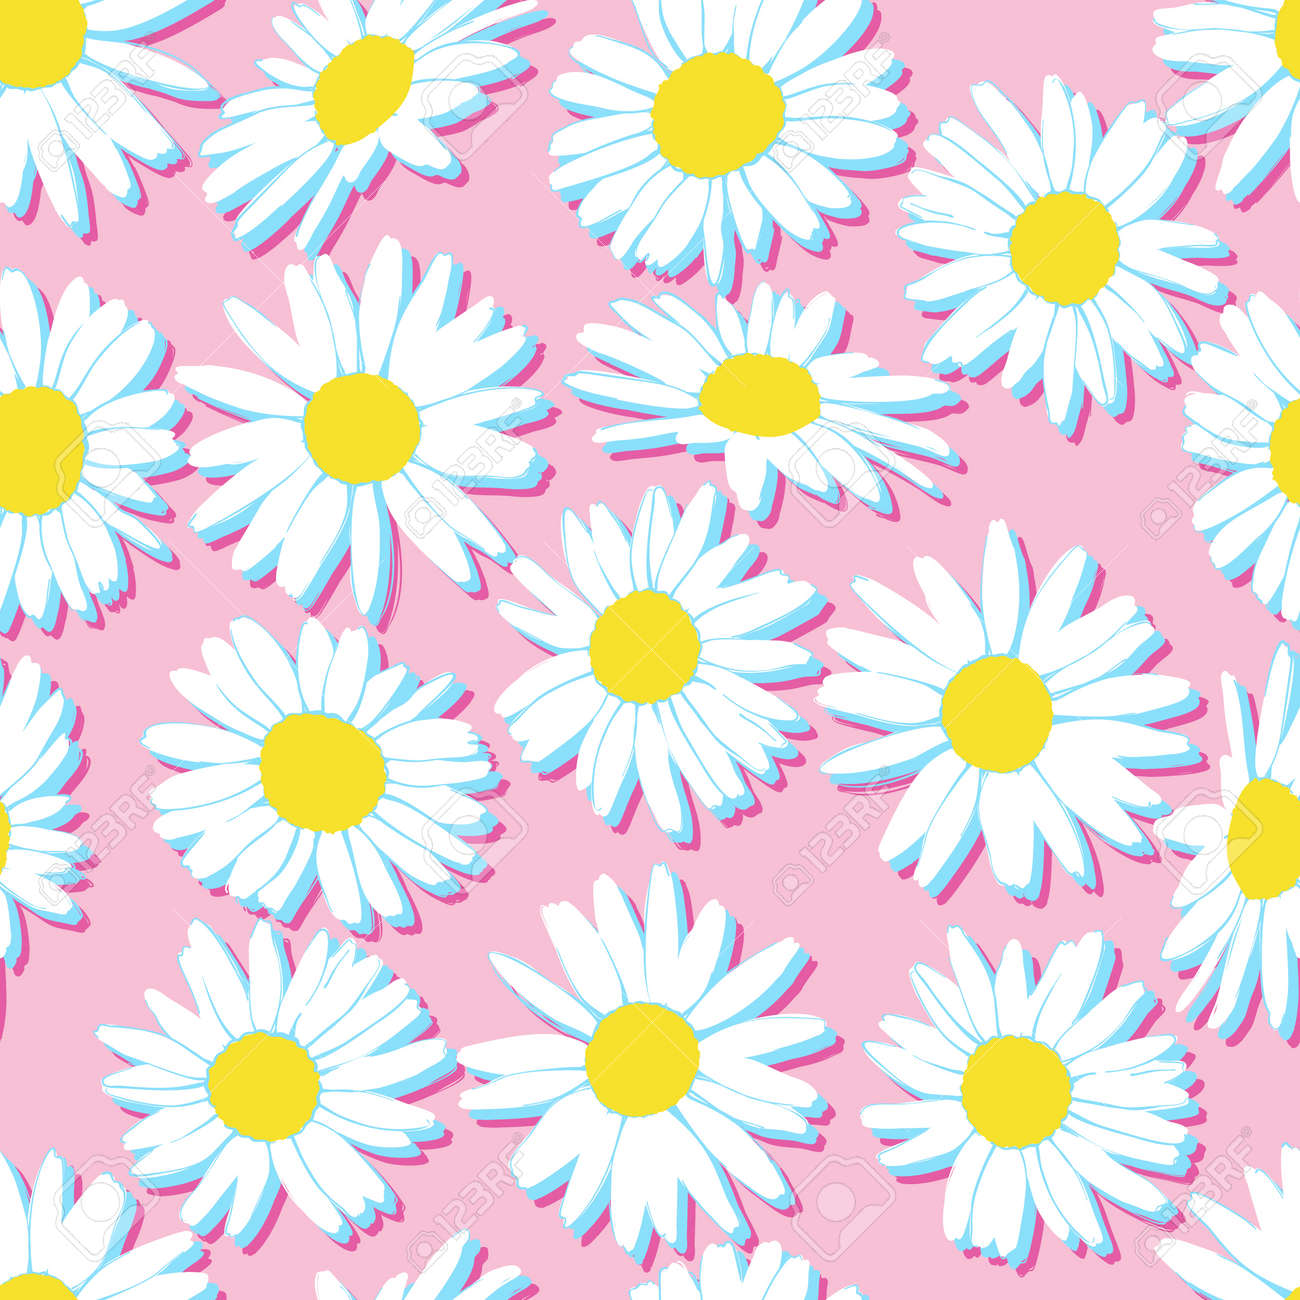 Hand drawn floral seamless pastel pattern with camomile silhouettes. Cute graphic flower background. Summer